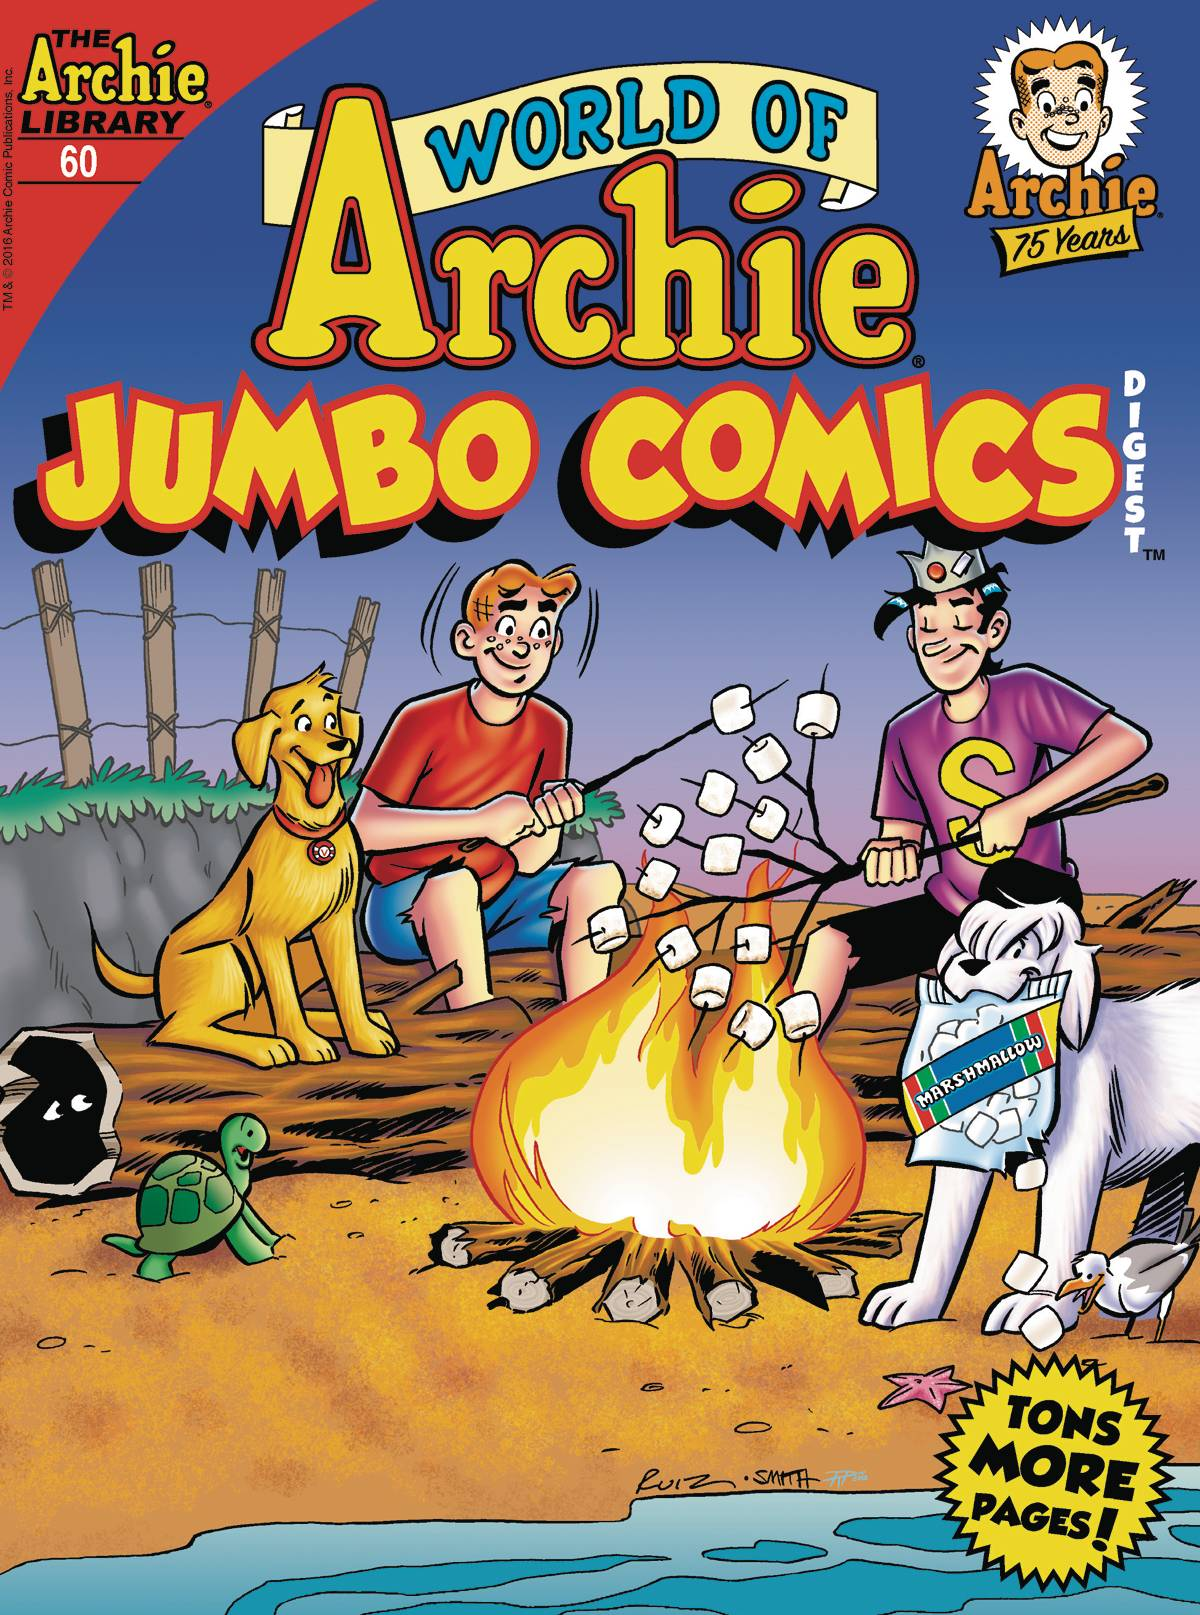 ARCHIE JUMBO COMICS LIBRARY THE ARCHIE LIBRARY 60 BRAND NEW